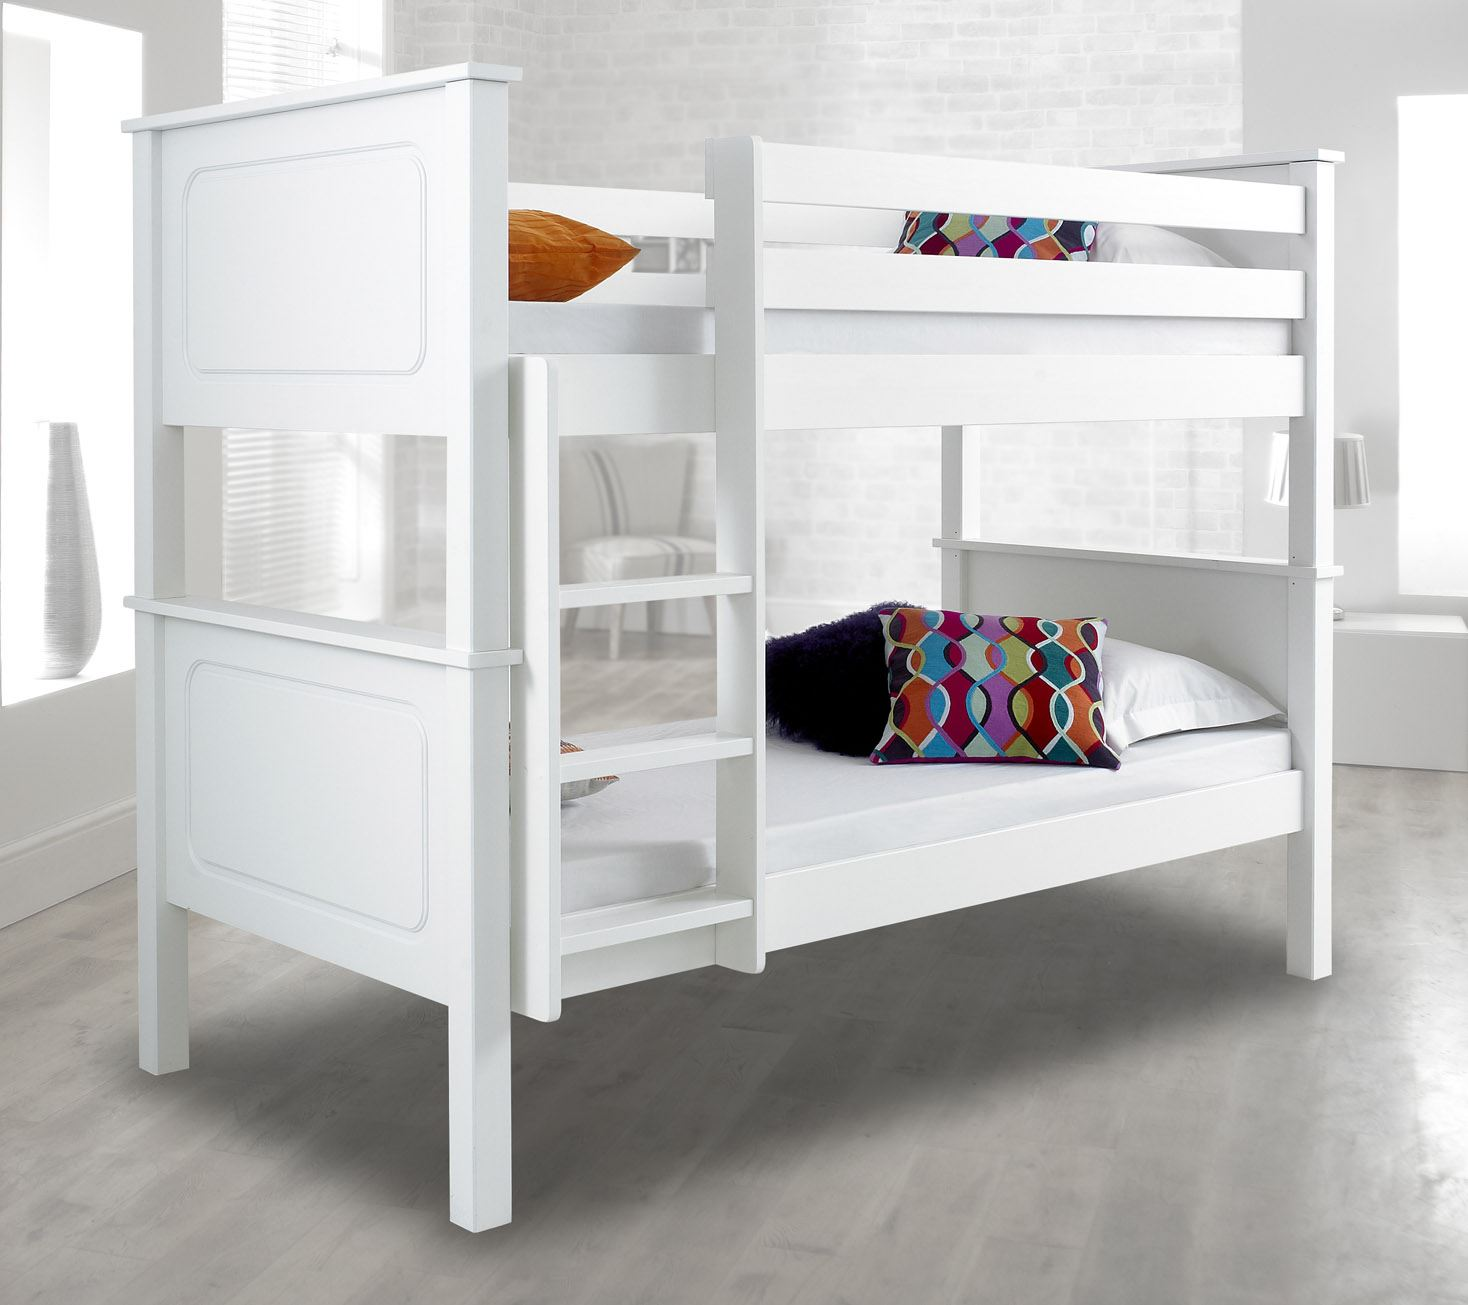 Happy beds vancouver solid wood pine bunk bed 3ft single for Unfinished loft bed